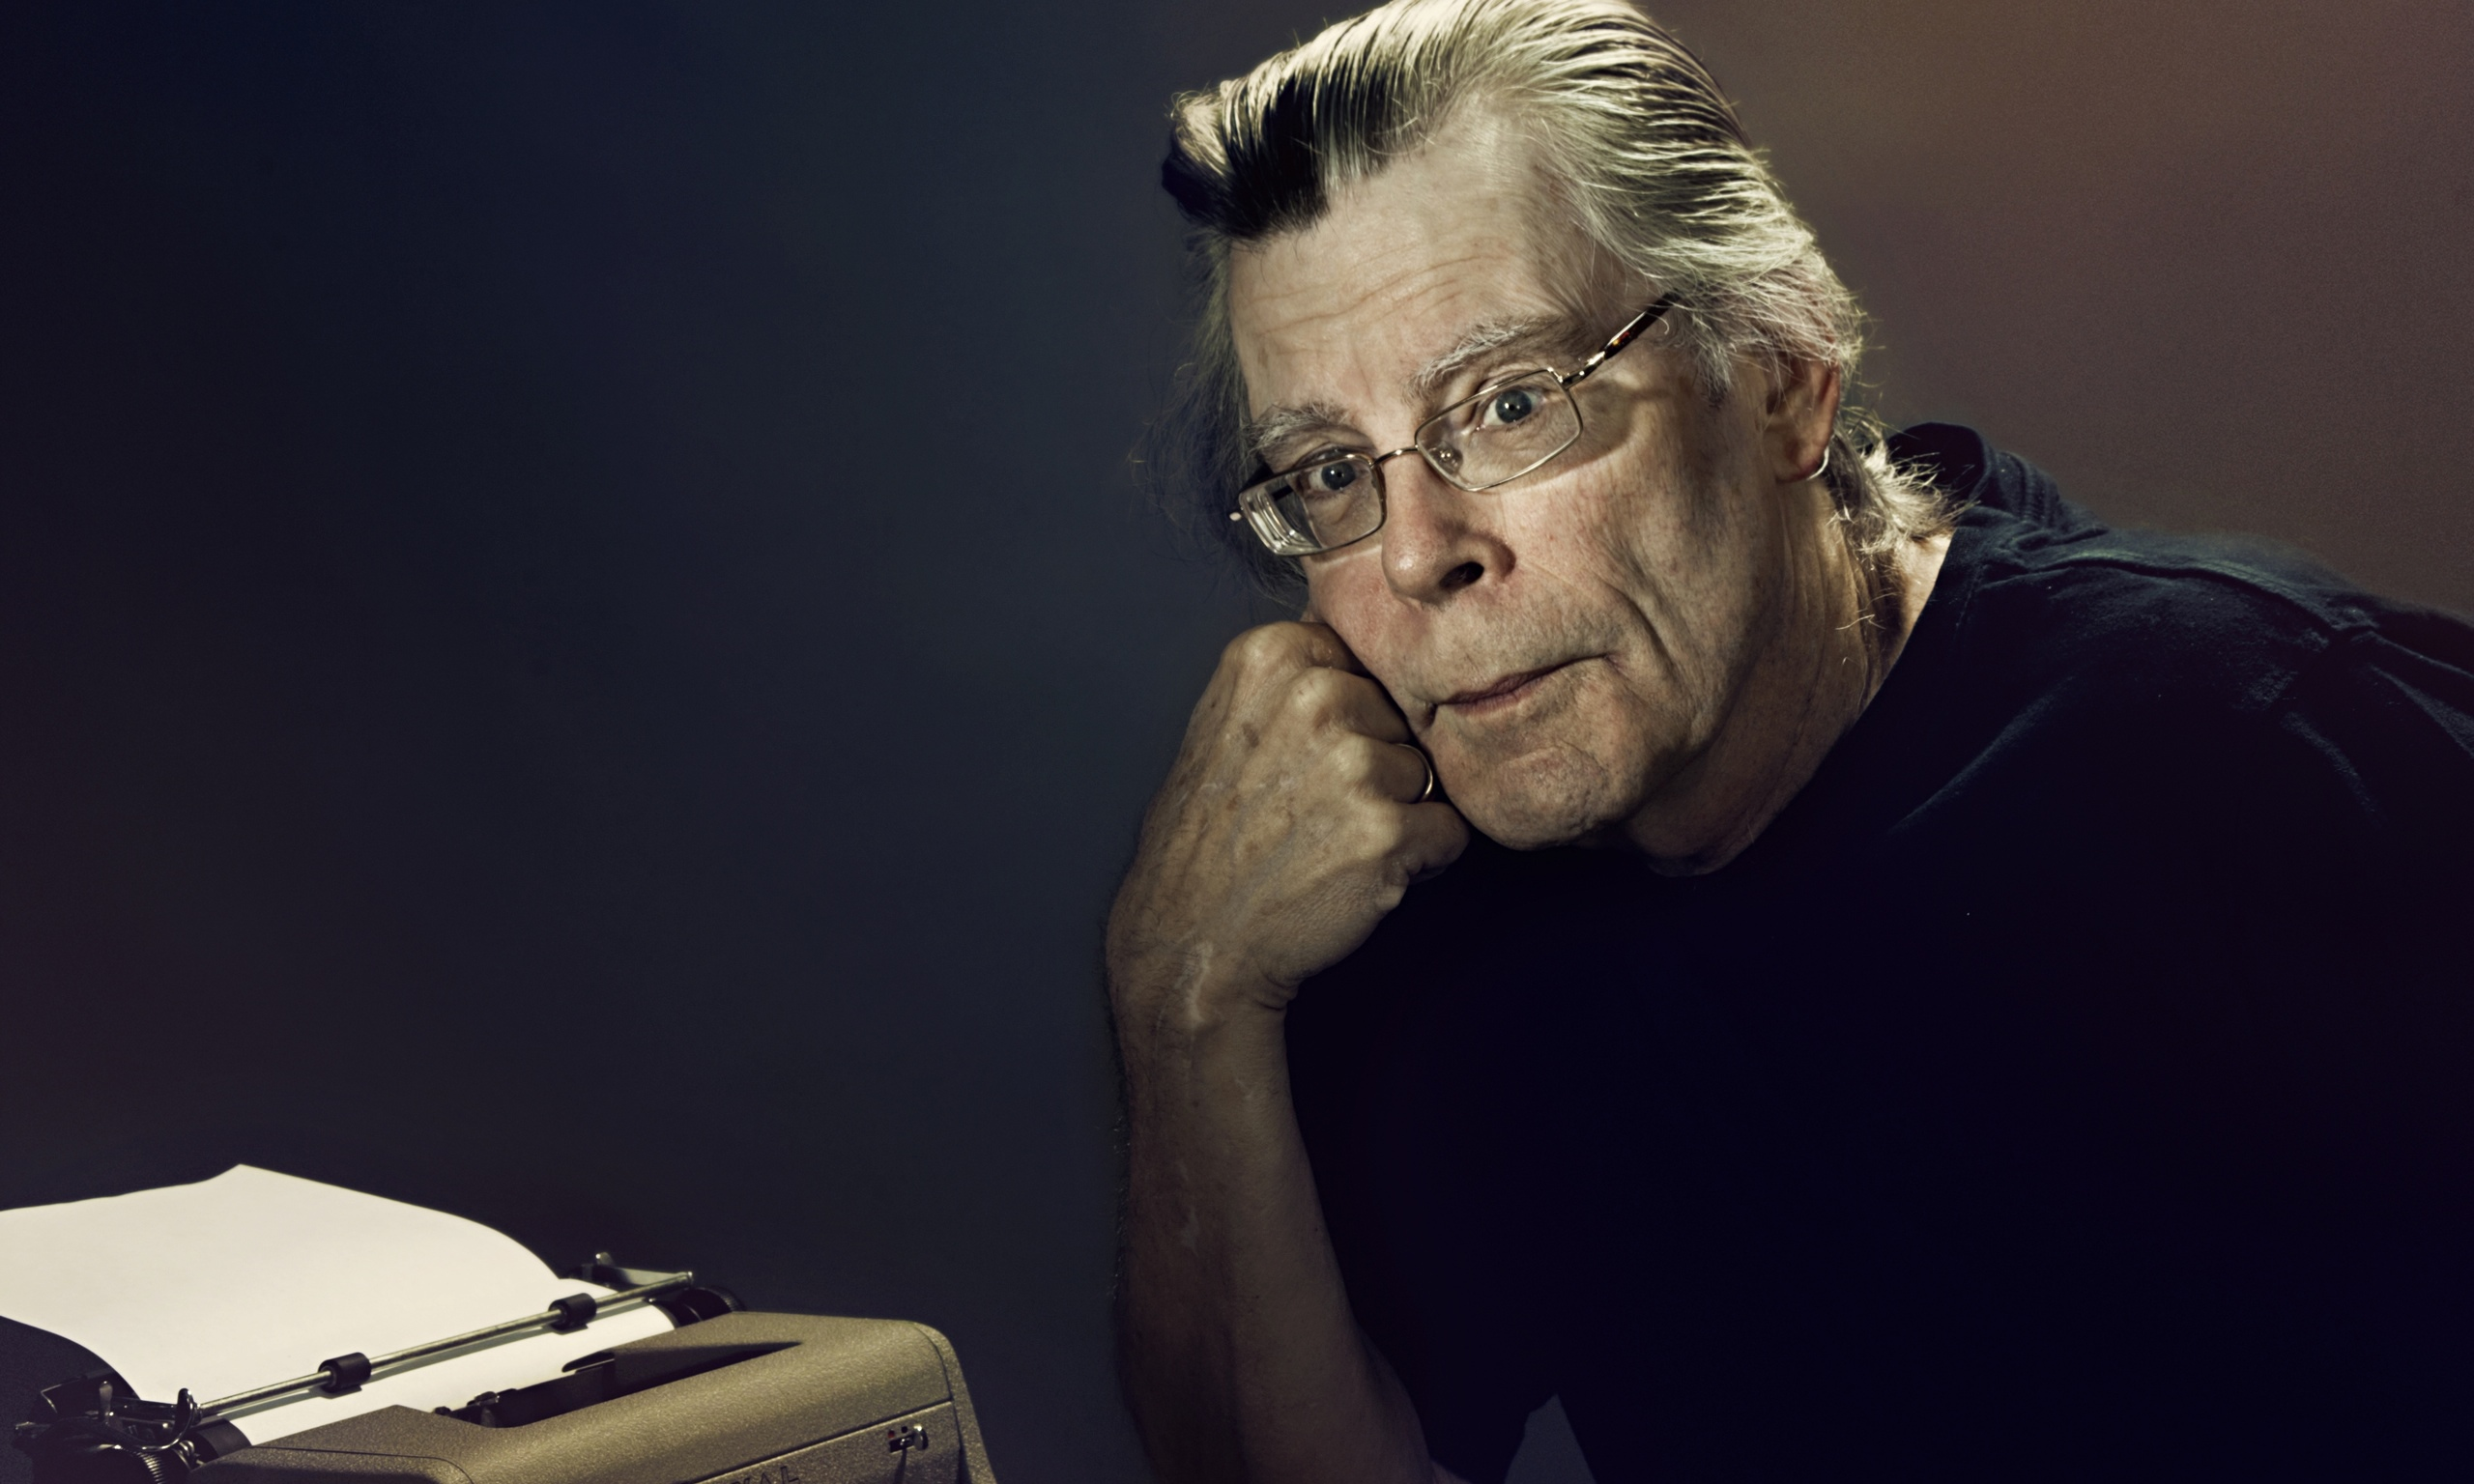 Stephen King's 'The Jaunt' Gets Optioned For Movie Feature ... Stephen King